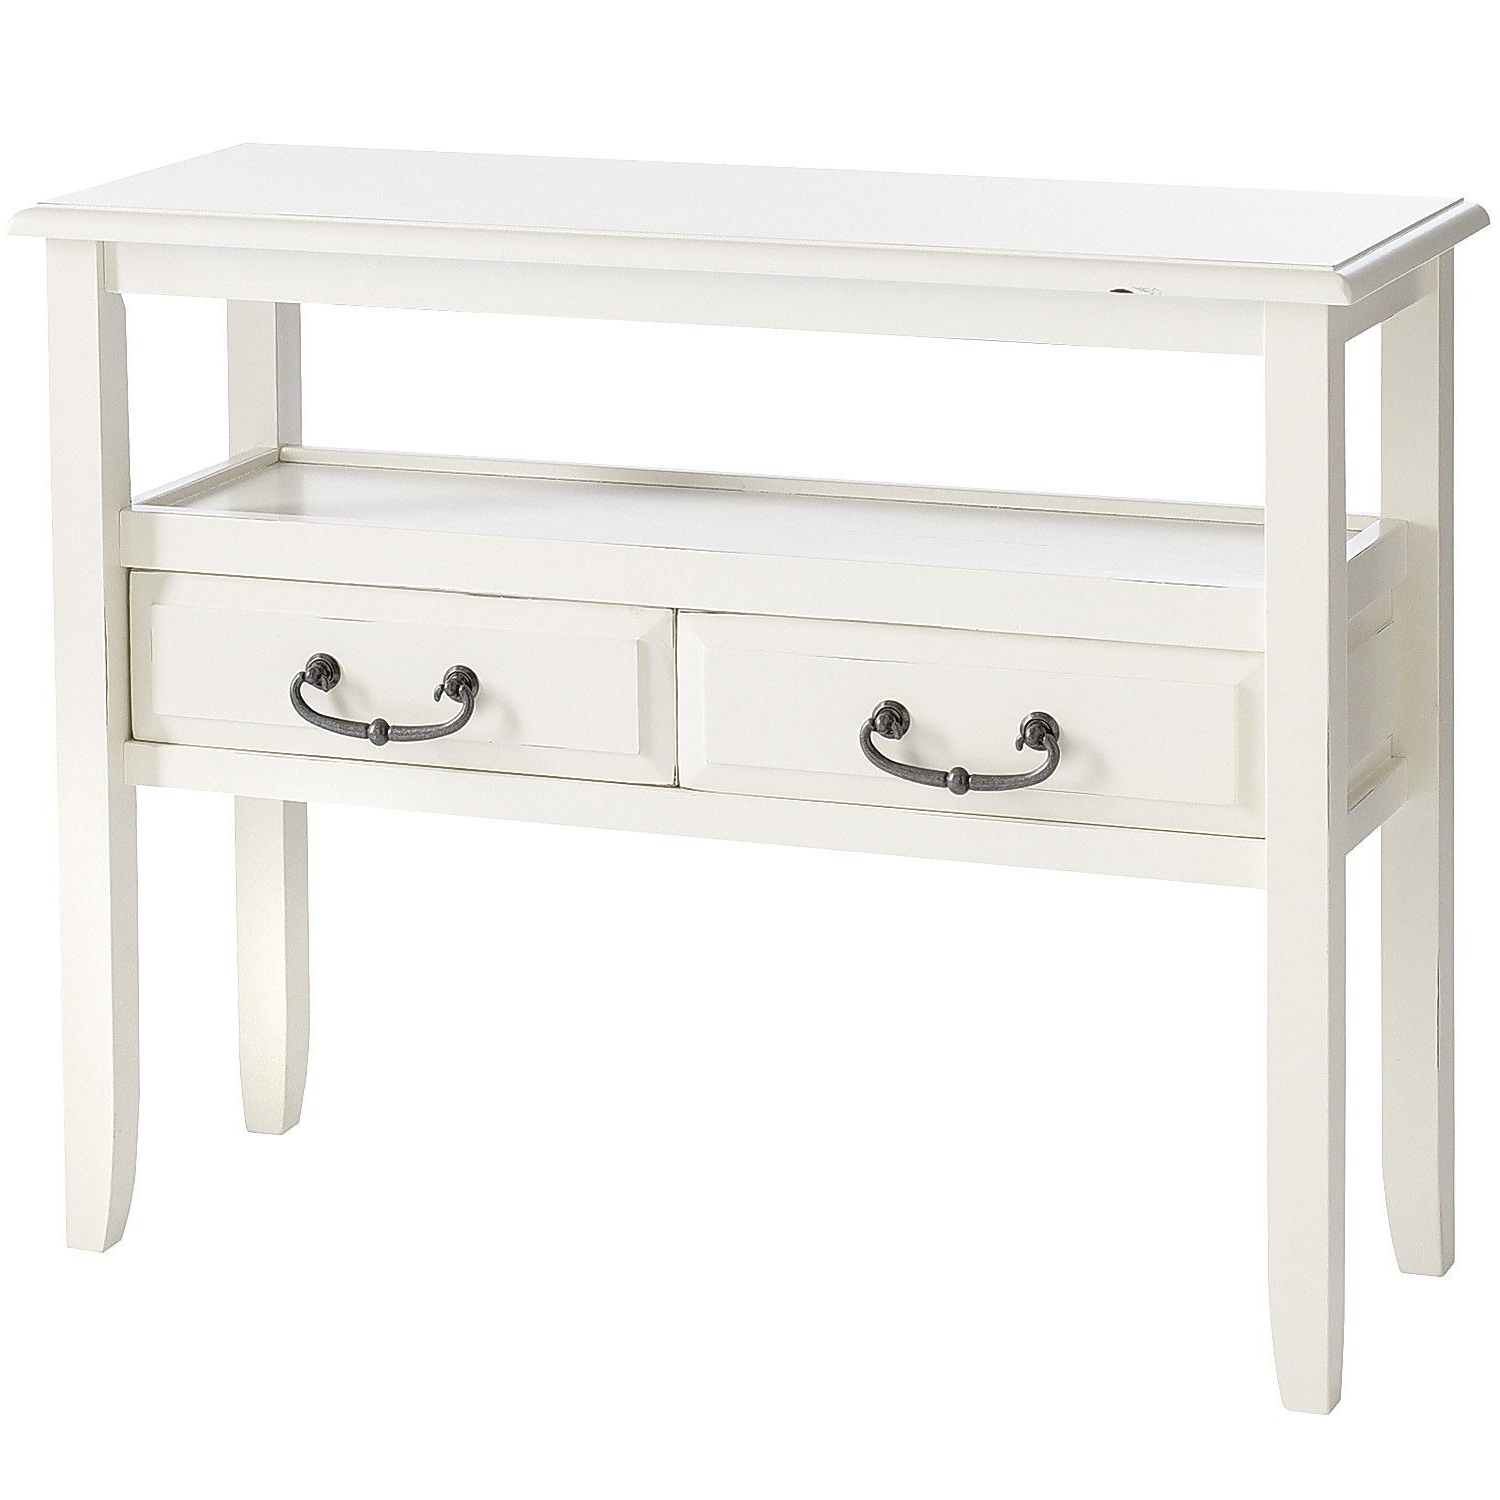 Anywhere Antique White Console Table With Pull Handles | Home Sweet Throughout Switch Console Tables (View 5 of 20)